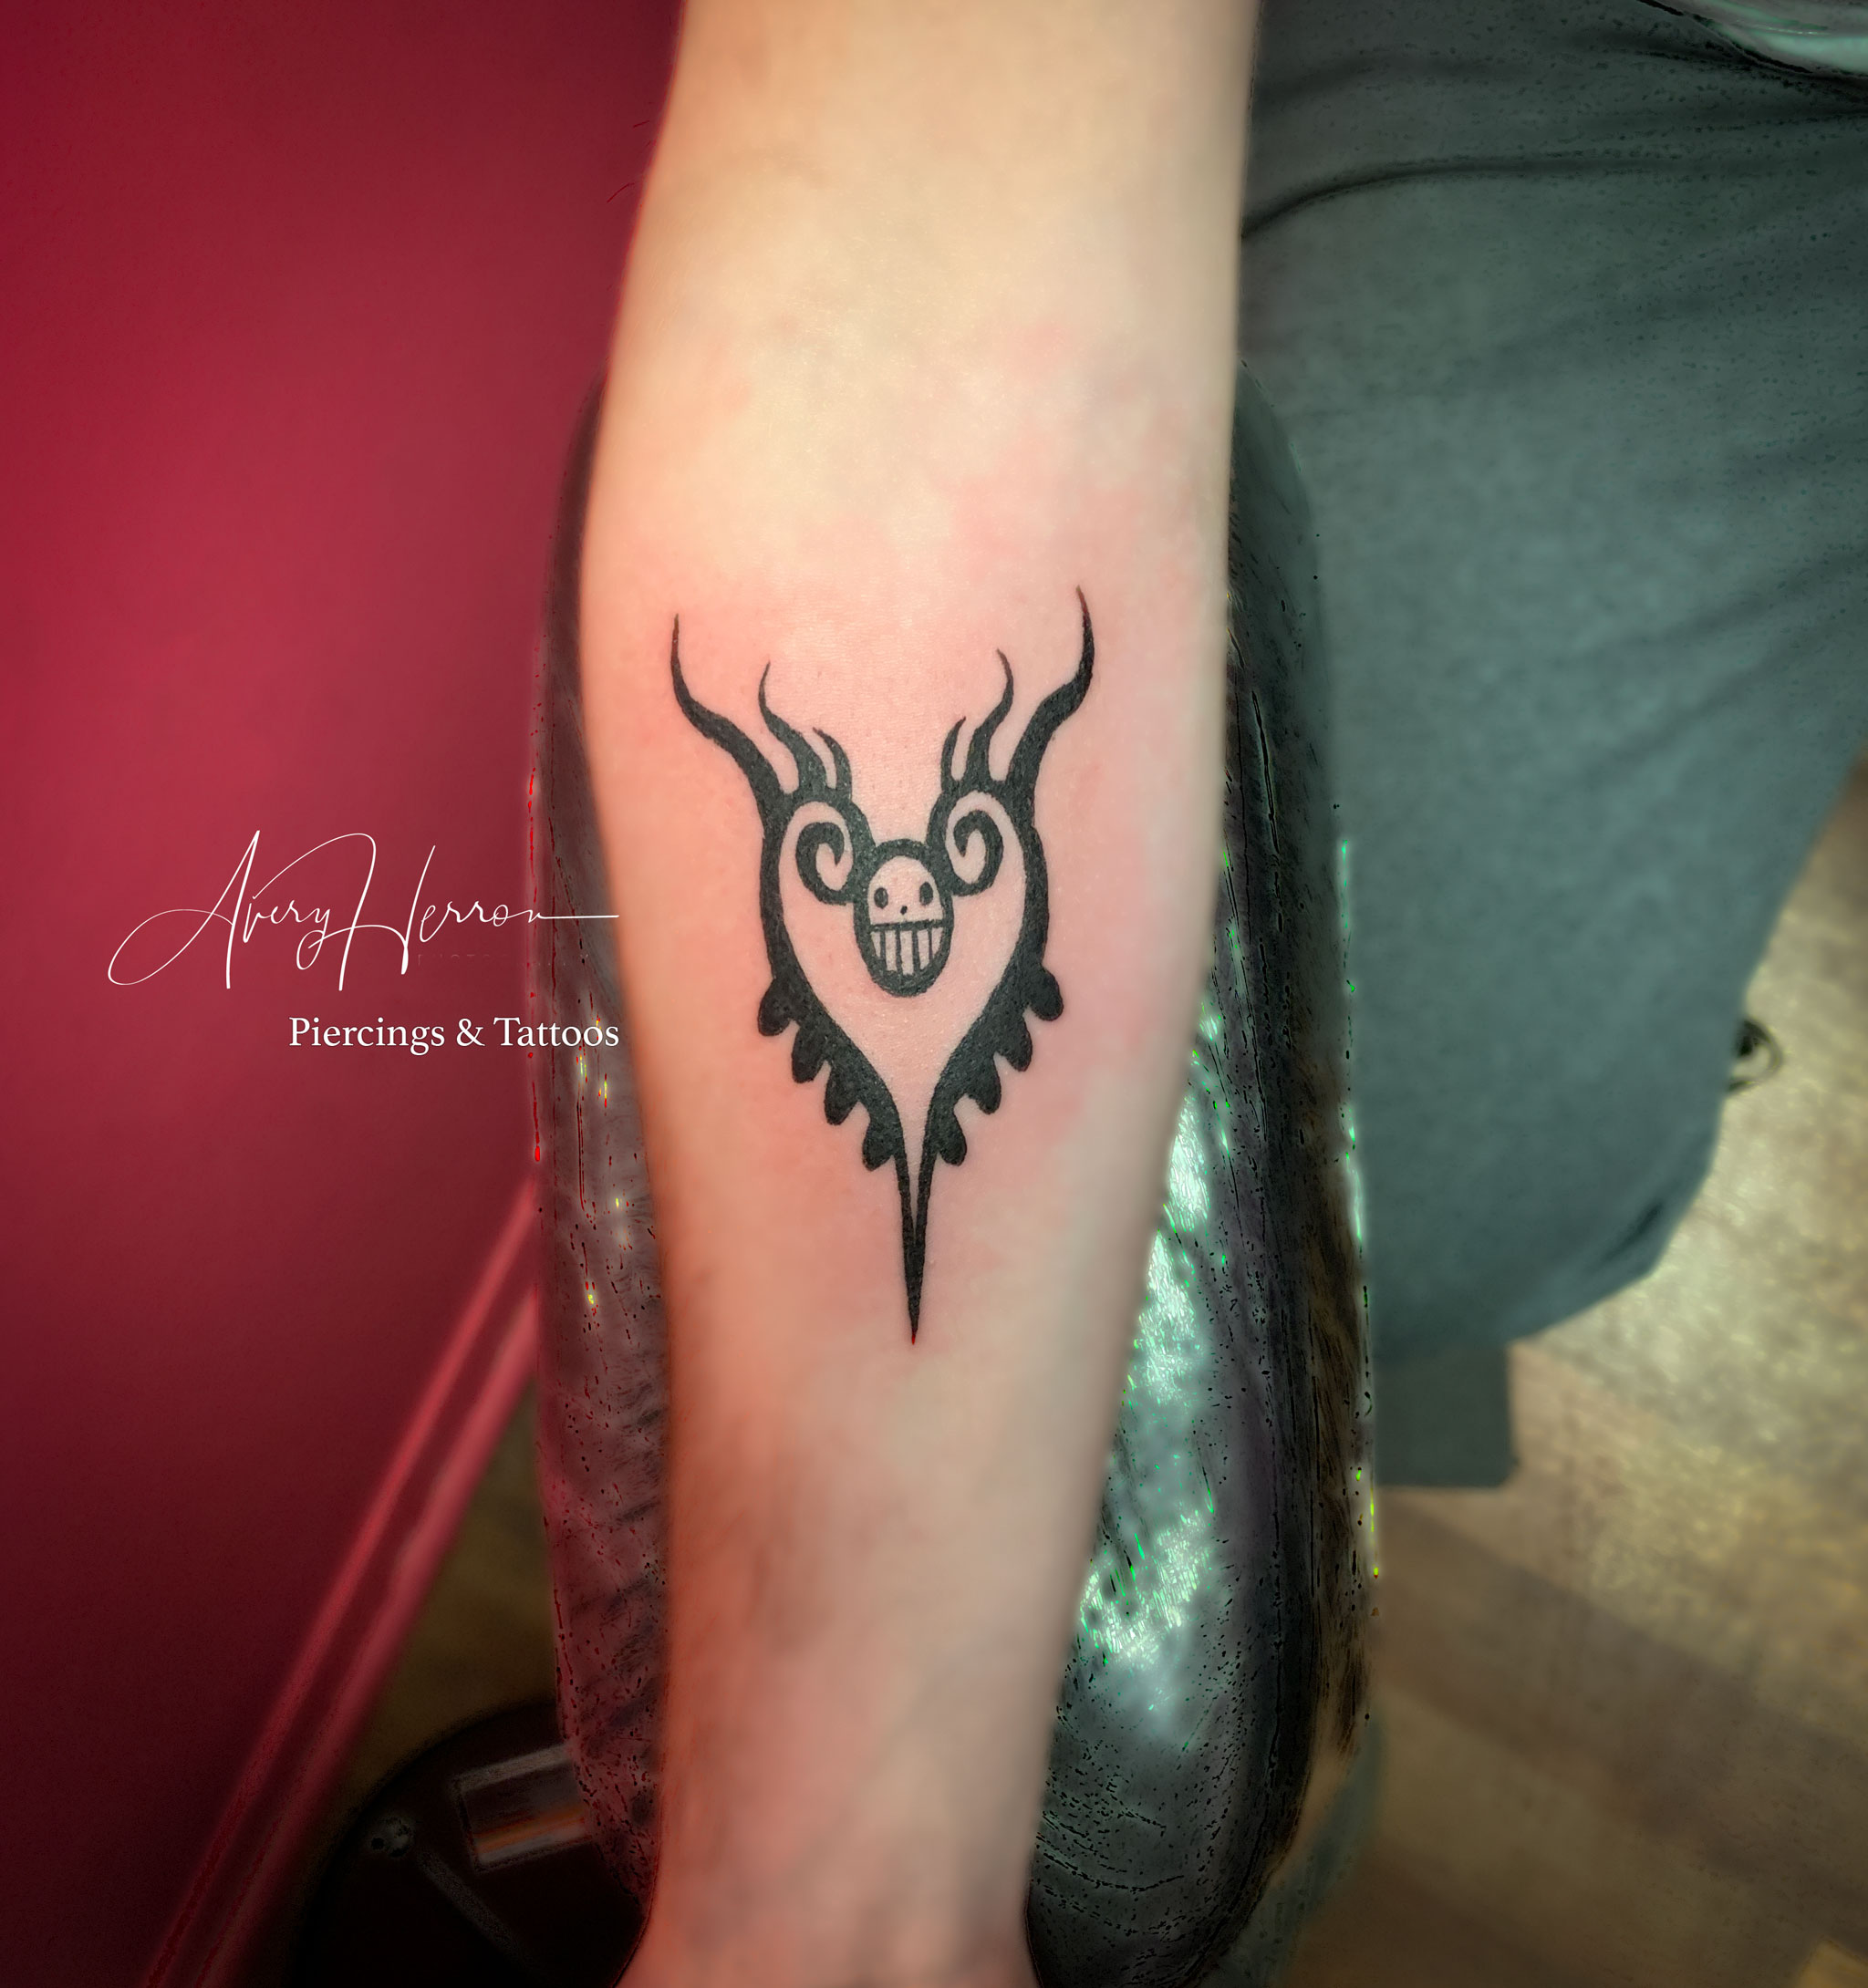 Owl-One-Piece-Tattoo.JPG